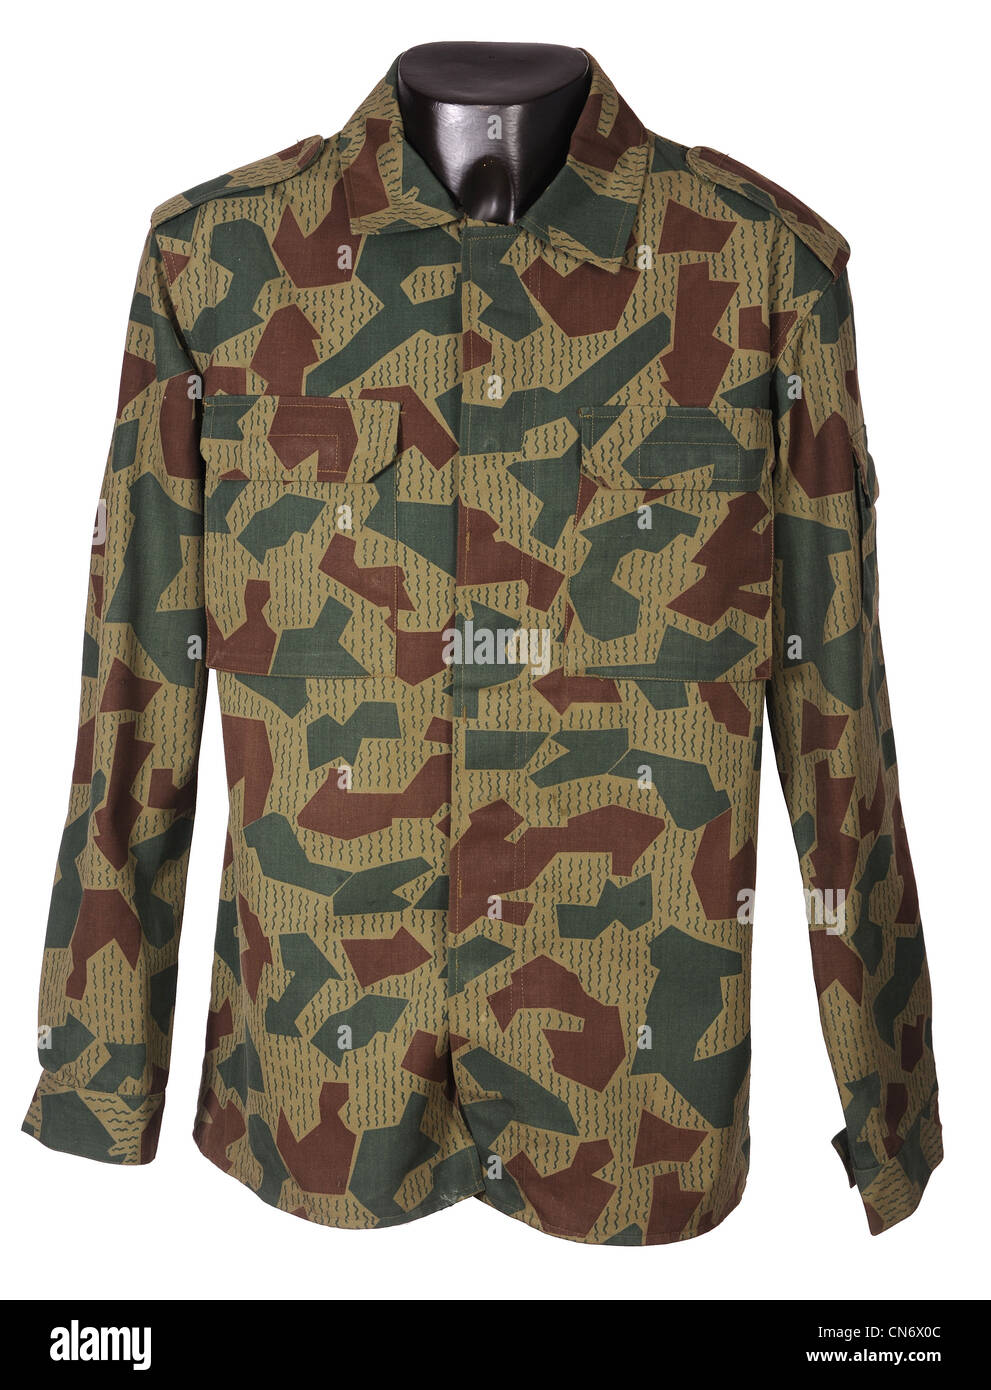 Camouflage clothing as used by military forces Bulgarian splinter camo - Stock Image